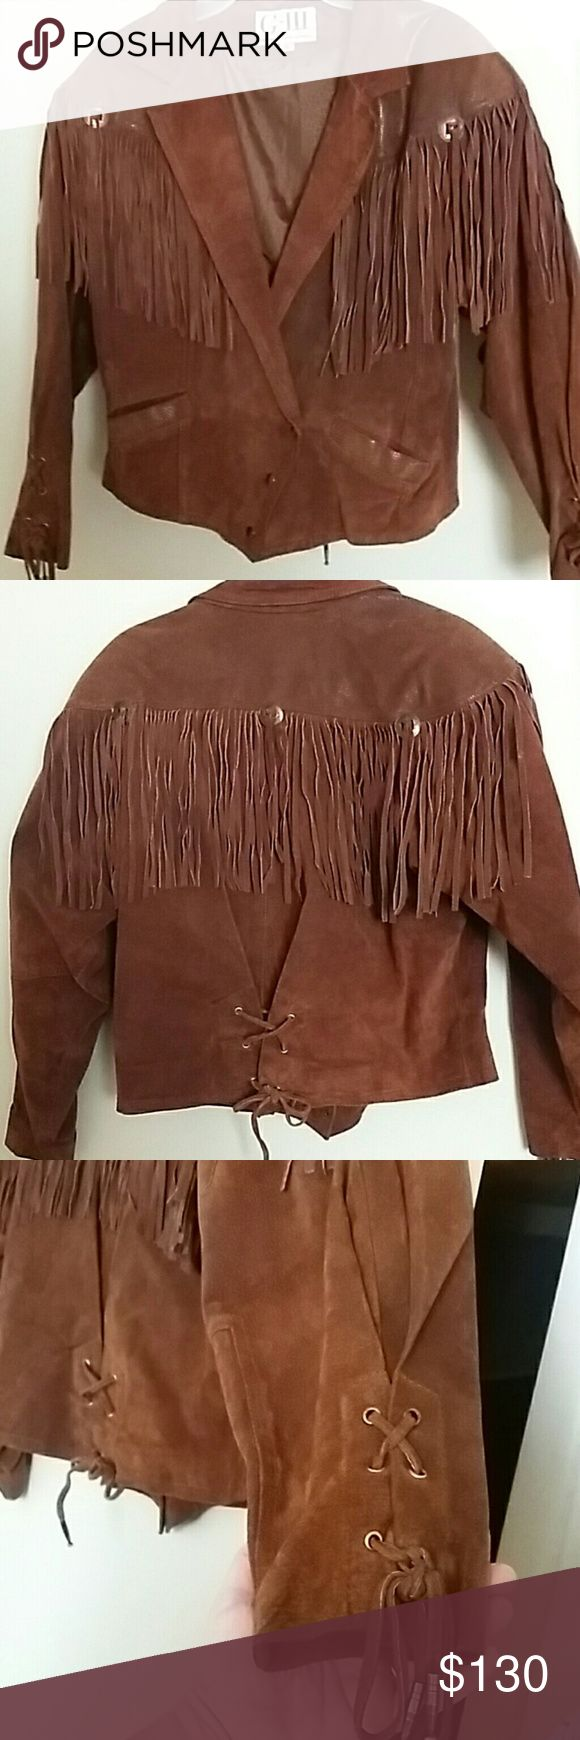 Size L 100% Suede Leather Jacket w/ Fringe Detail Gorgeous Brown Leather Jacket with fringed yoke, front and back. The sleeves and back have leather laces to adjust for custom fit. The yoke and pockets are reptile print with a slight sheen. The pictures make it look more shiny than it is. No attention to detail was spared!  The only two flaws are with the actual leather laces...the sleeve lace has the metal endcaps missing and the back lace has one cap missing. This does not affect the…